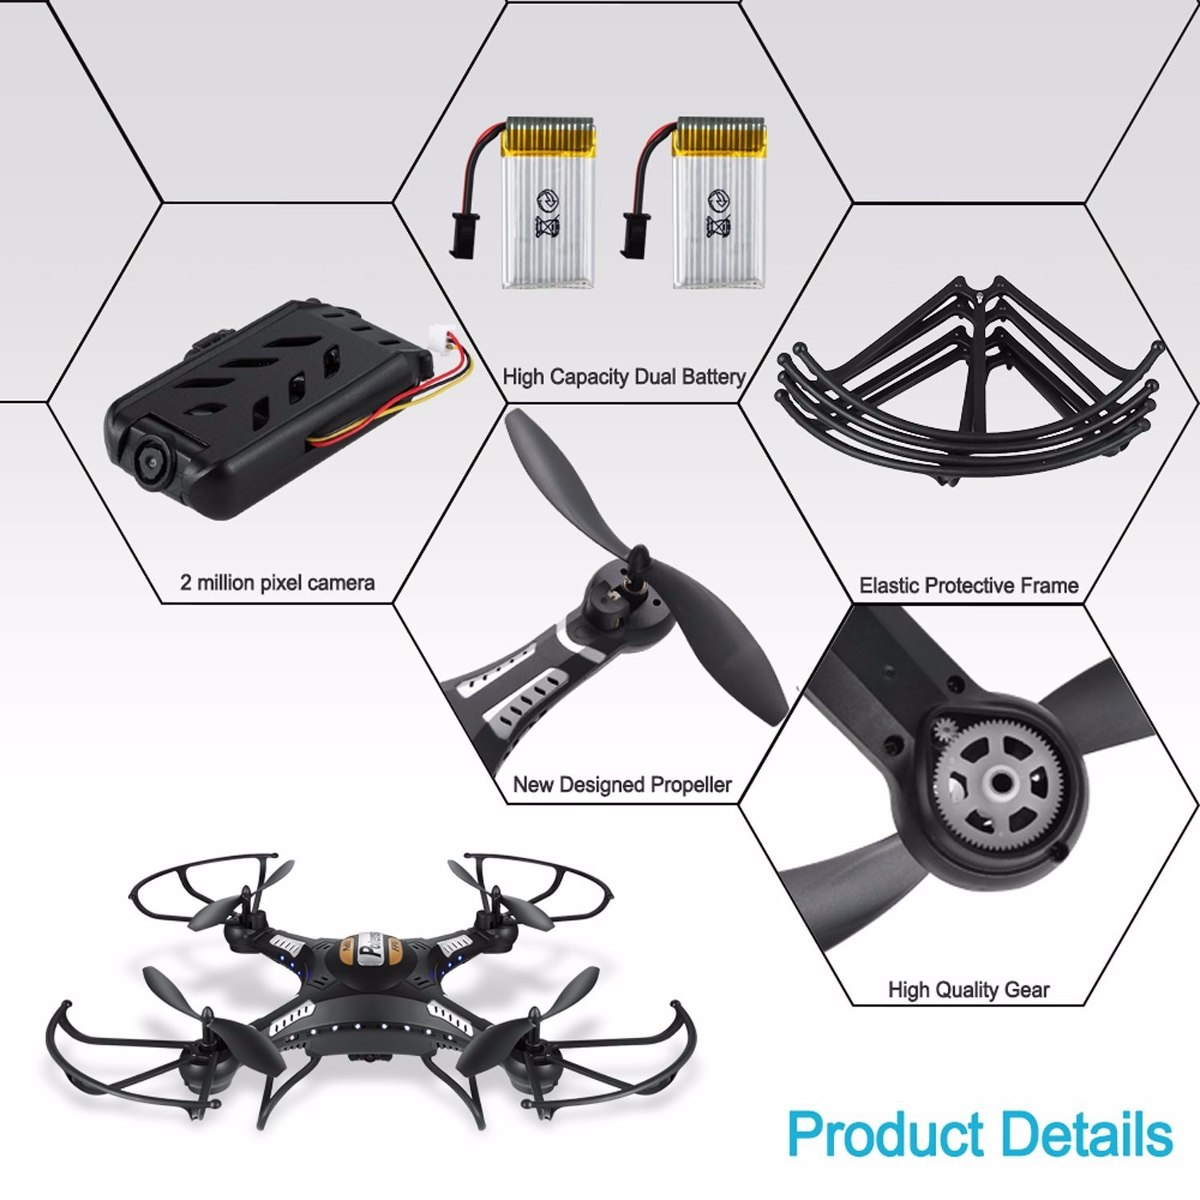 Dron Drone Helicoptero Potensic F183dh Camara 2mp 5.8ghz ...